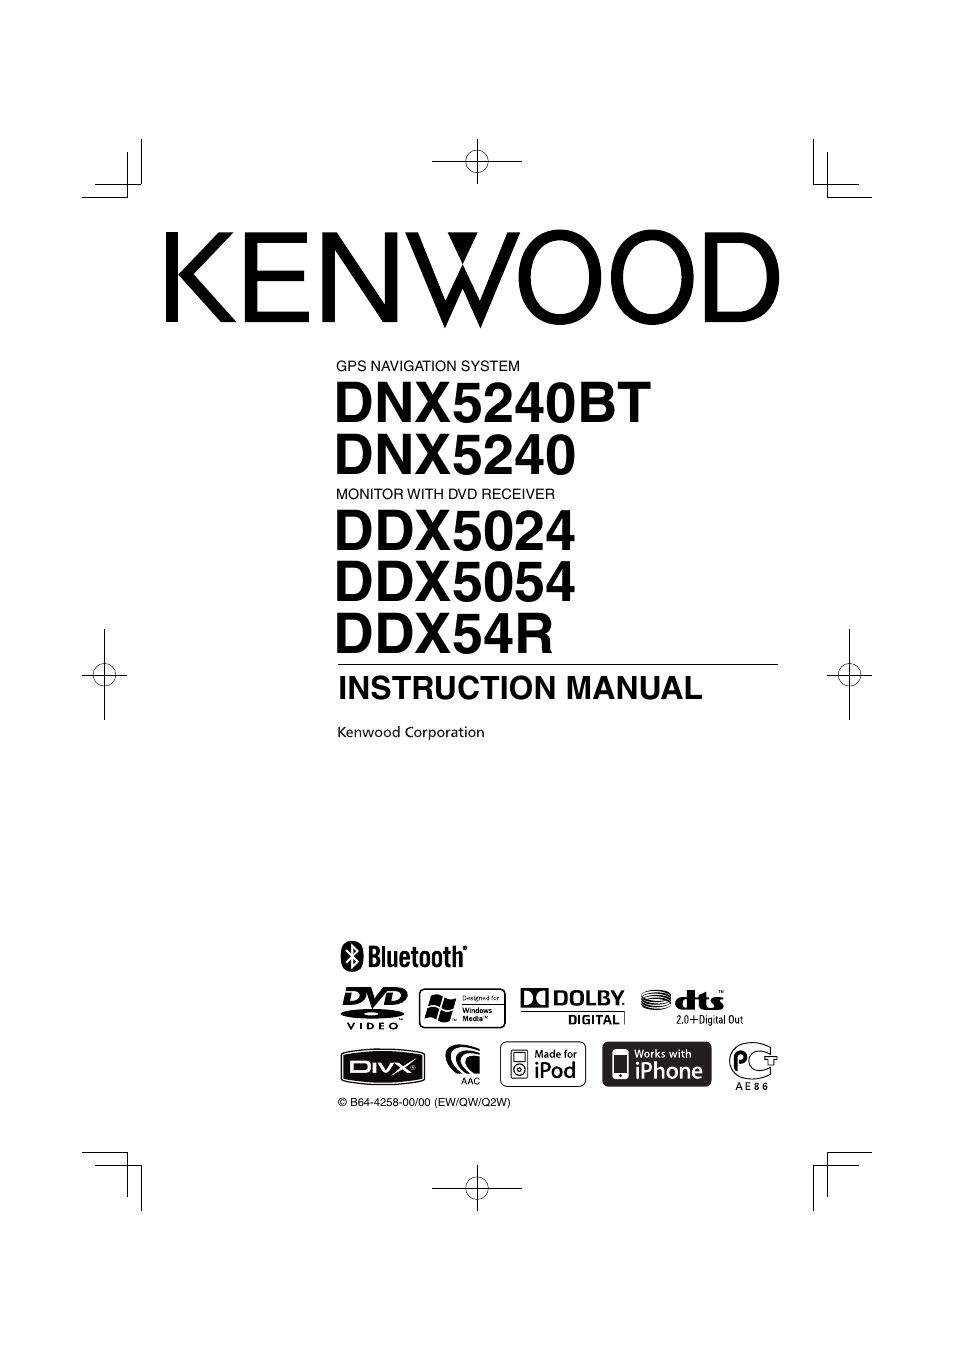 kenwood dnx5240bt user manual 96 pages also for ddx5024 rh manualsdir com